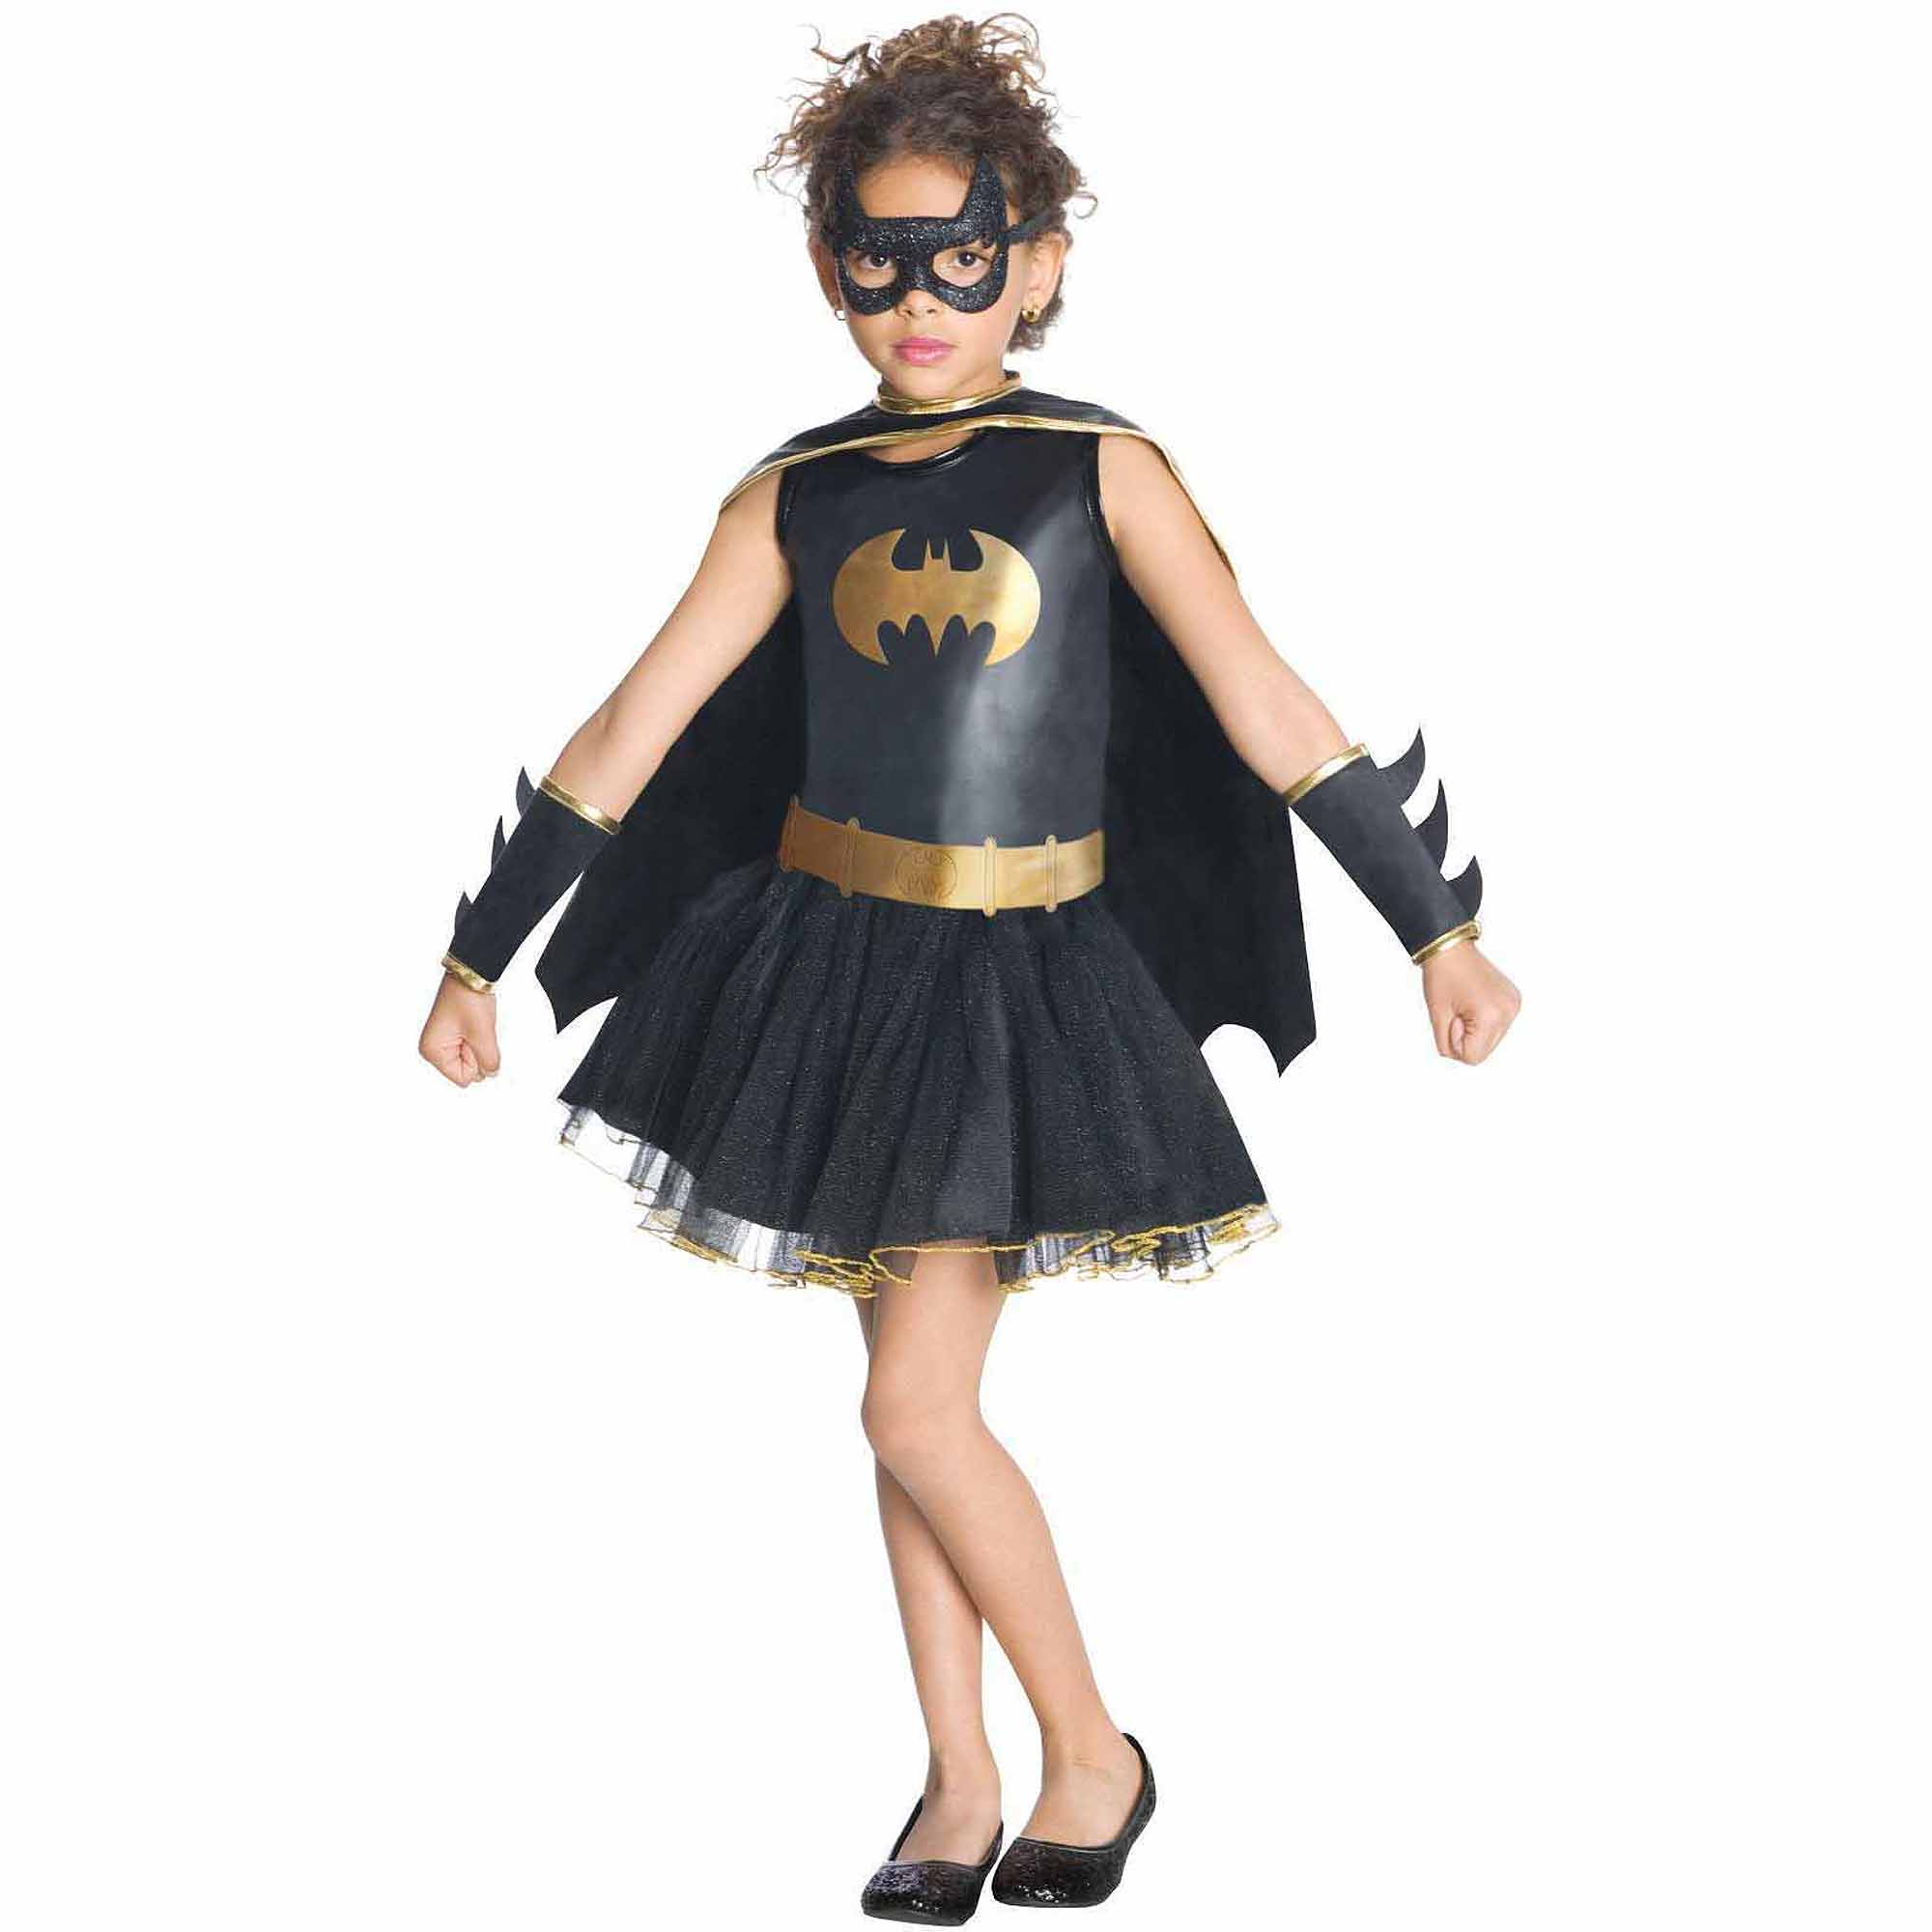 Batgirl Tutu Toddler Halloween Costume